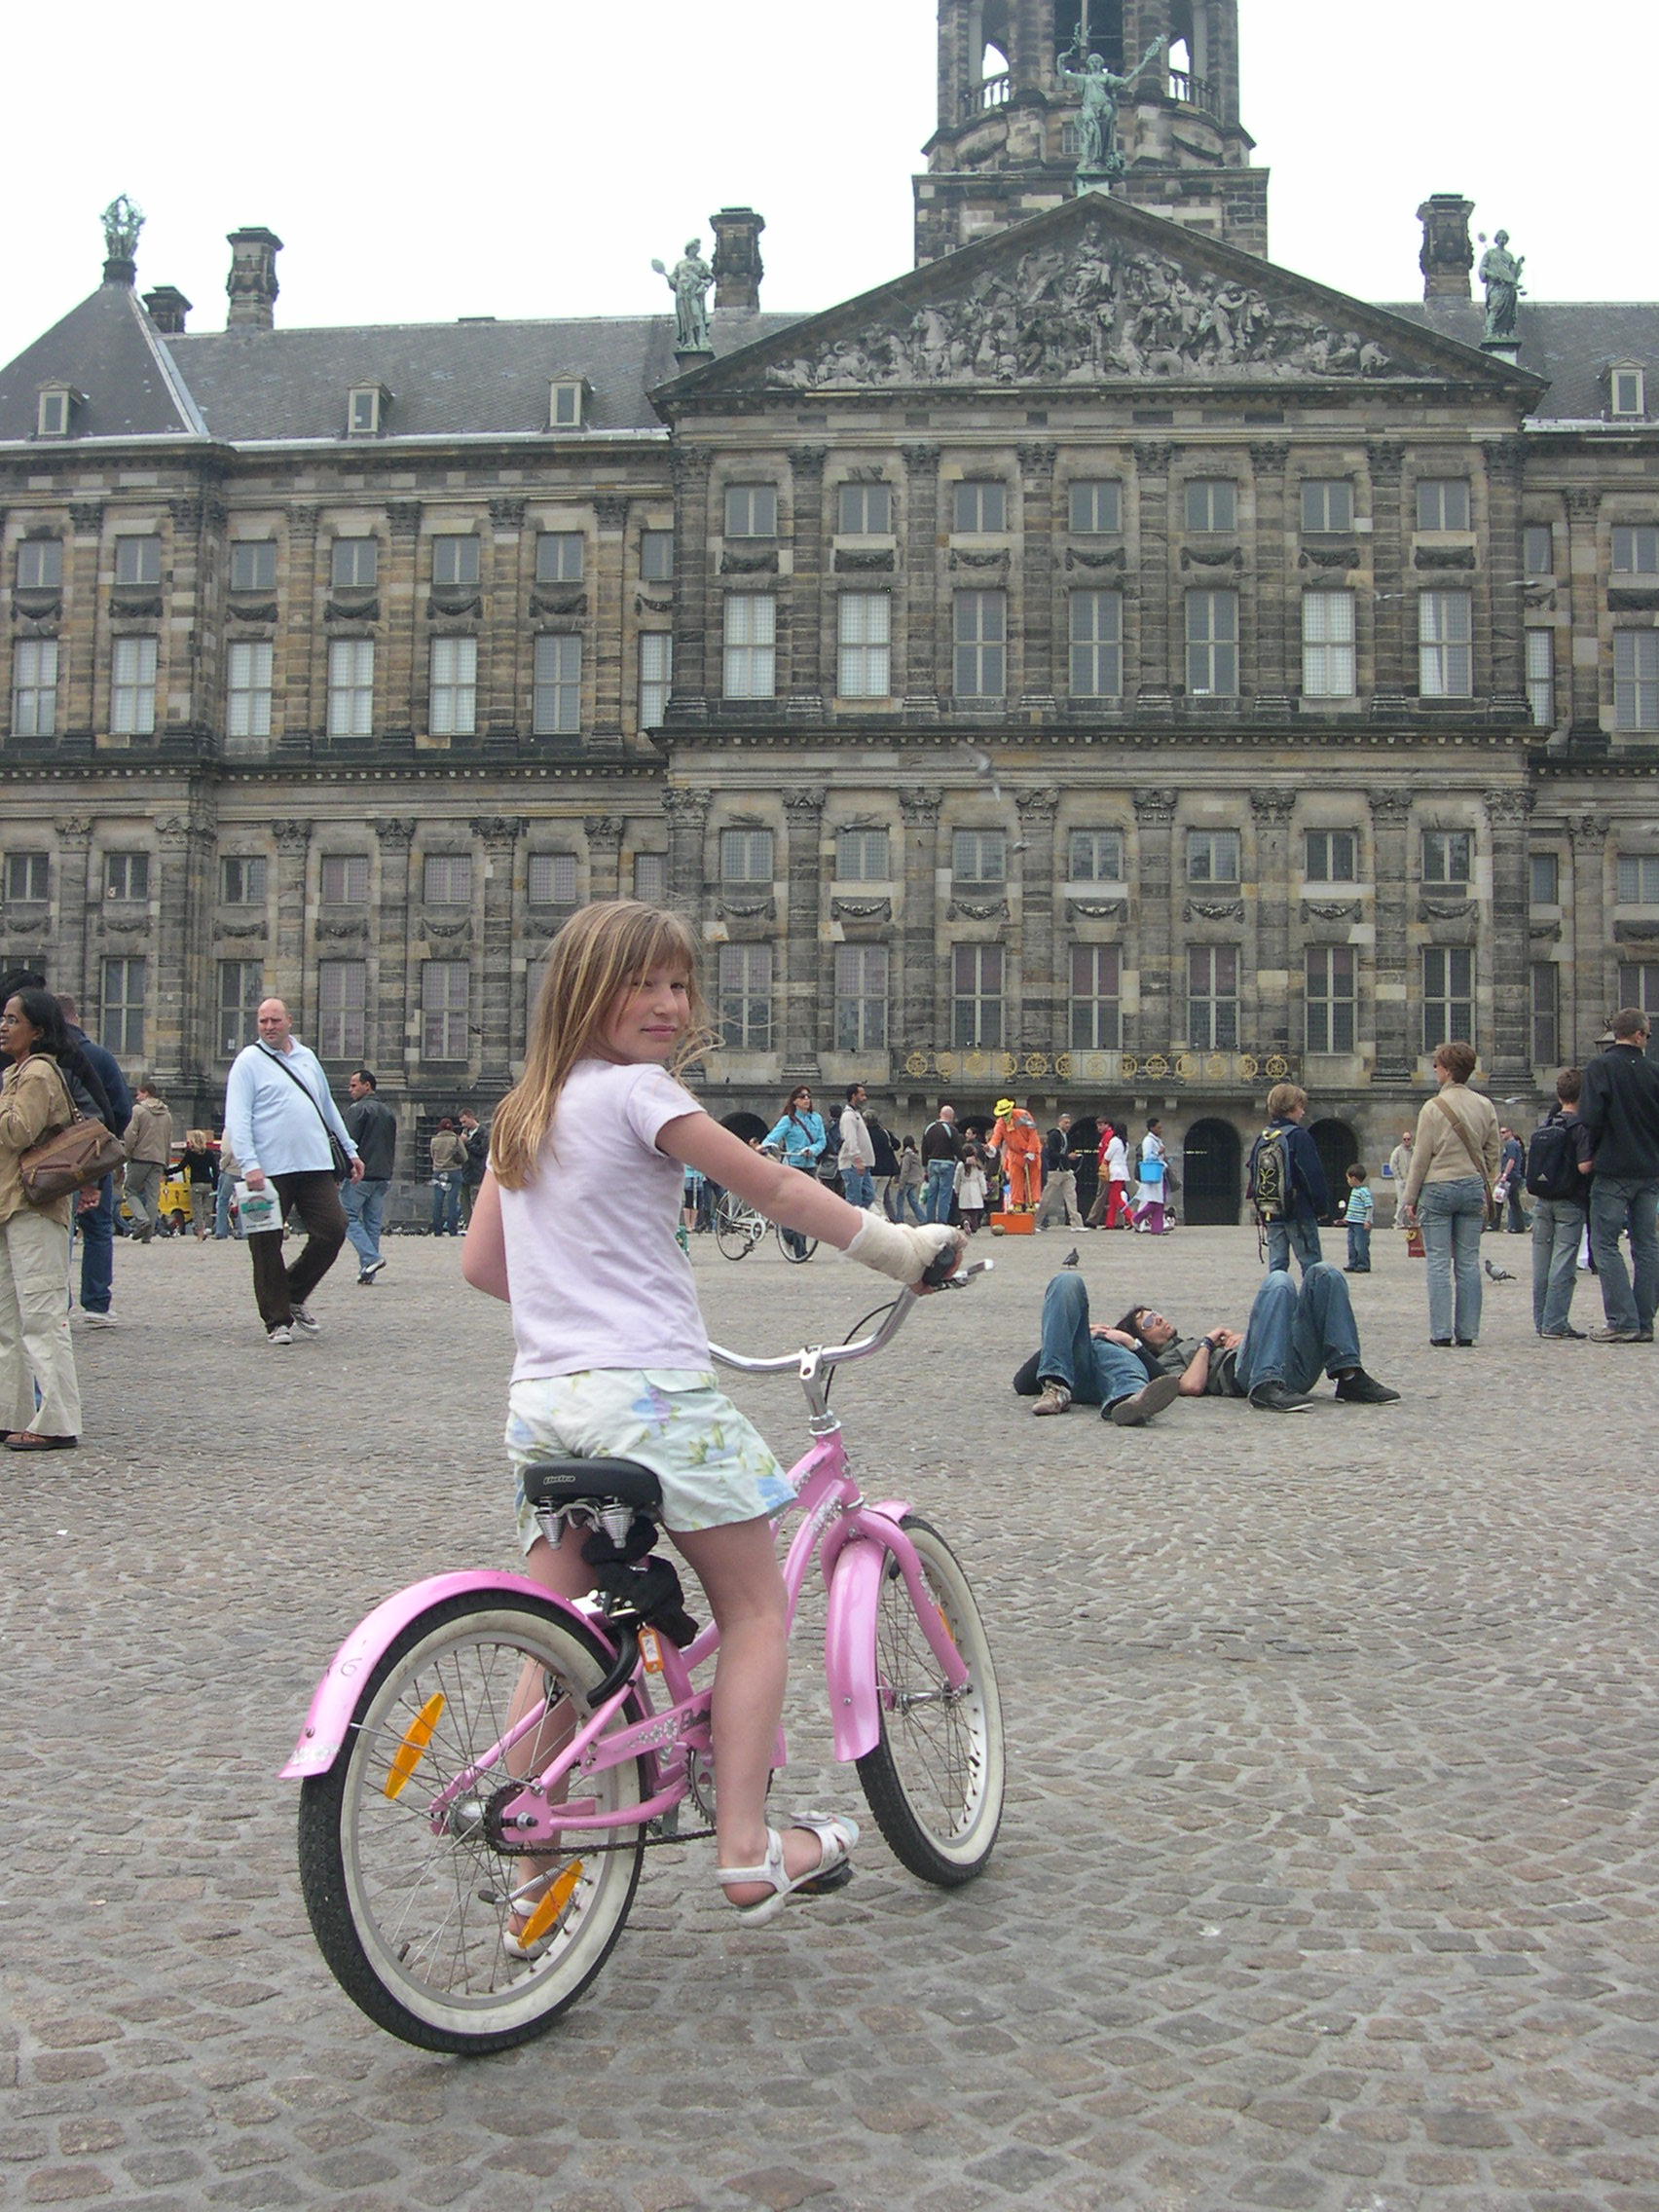 DAM Square - complete with street artist entertainment